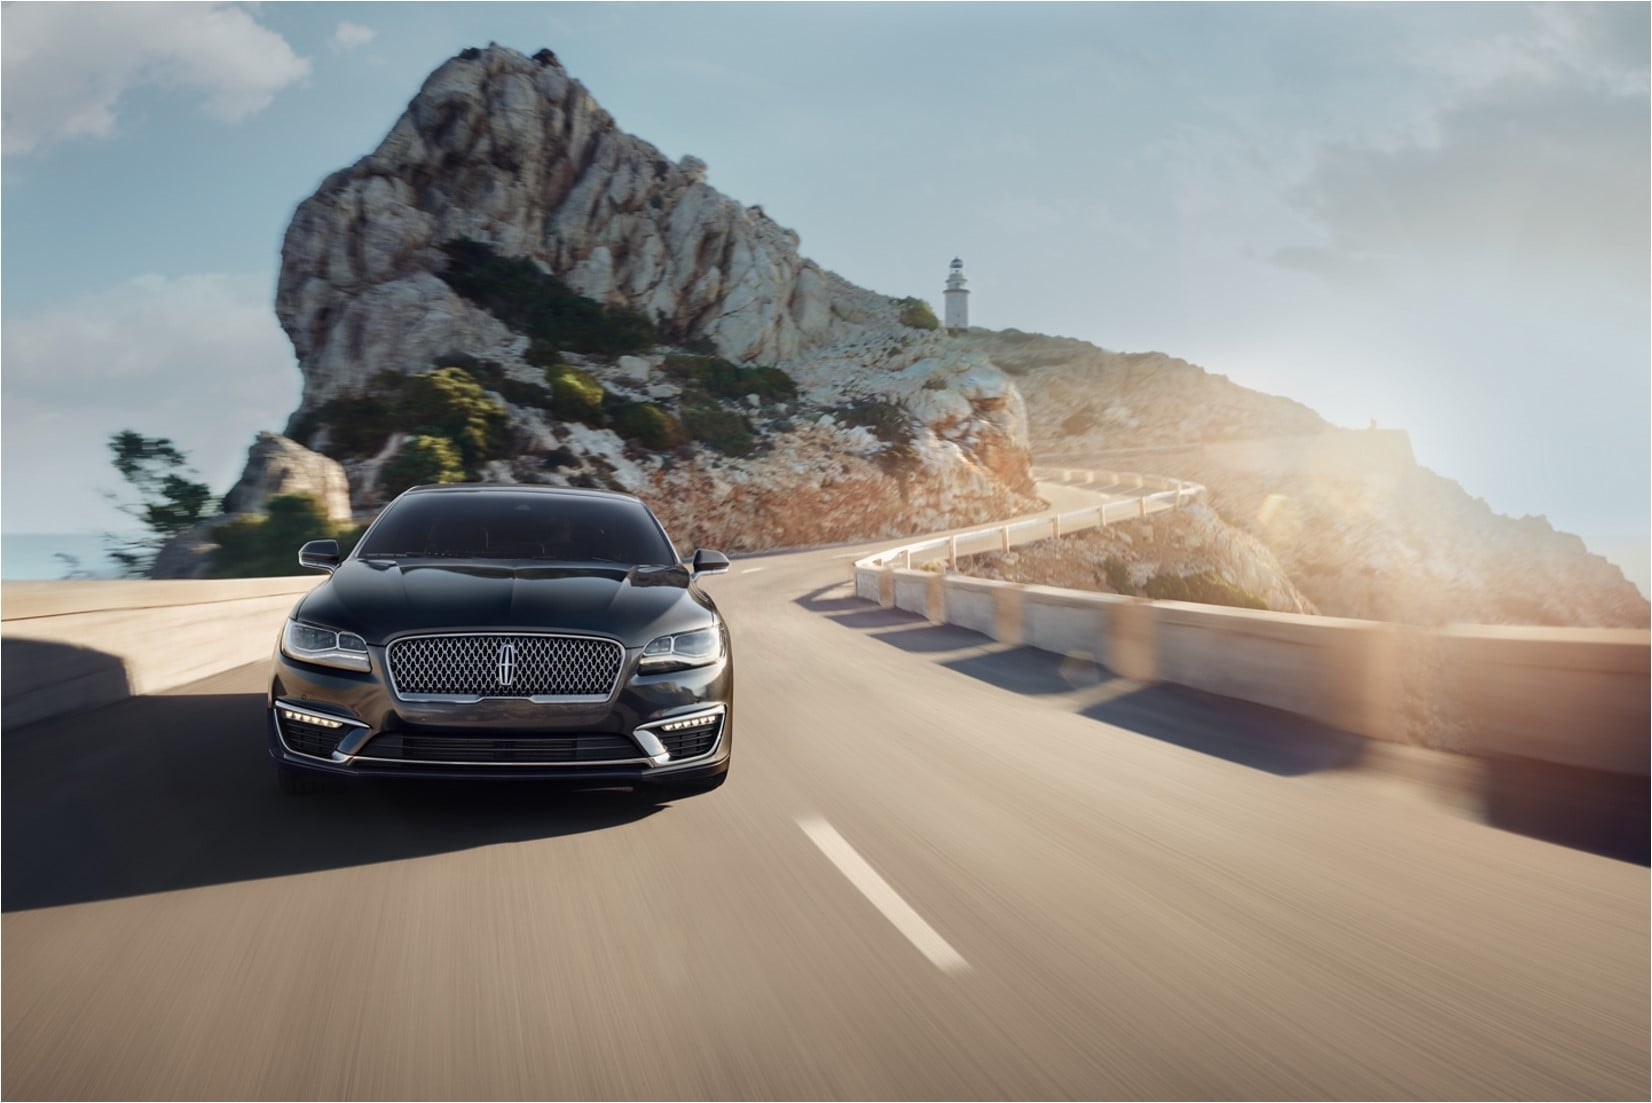 A 2020 Lincoln MKZ driving on a scenic road with ocean rocks and a lighthouse in the distance